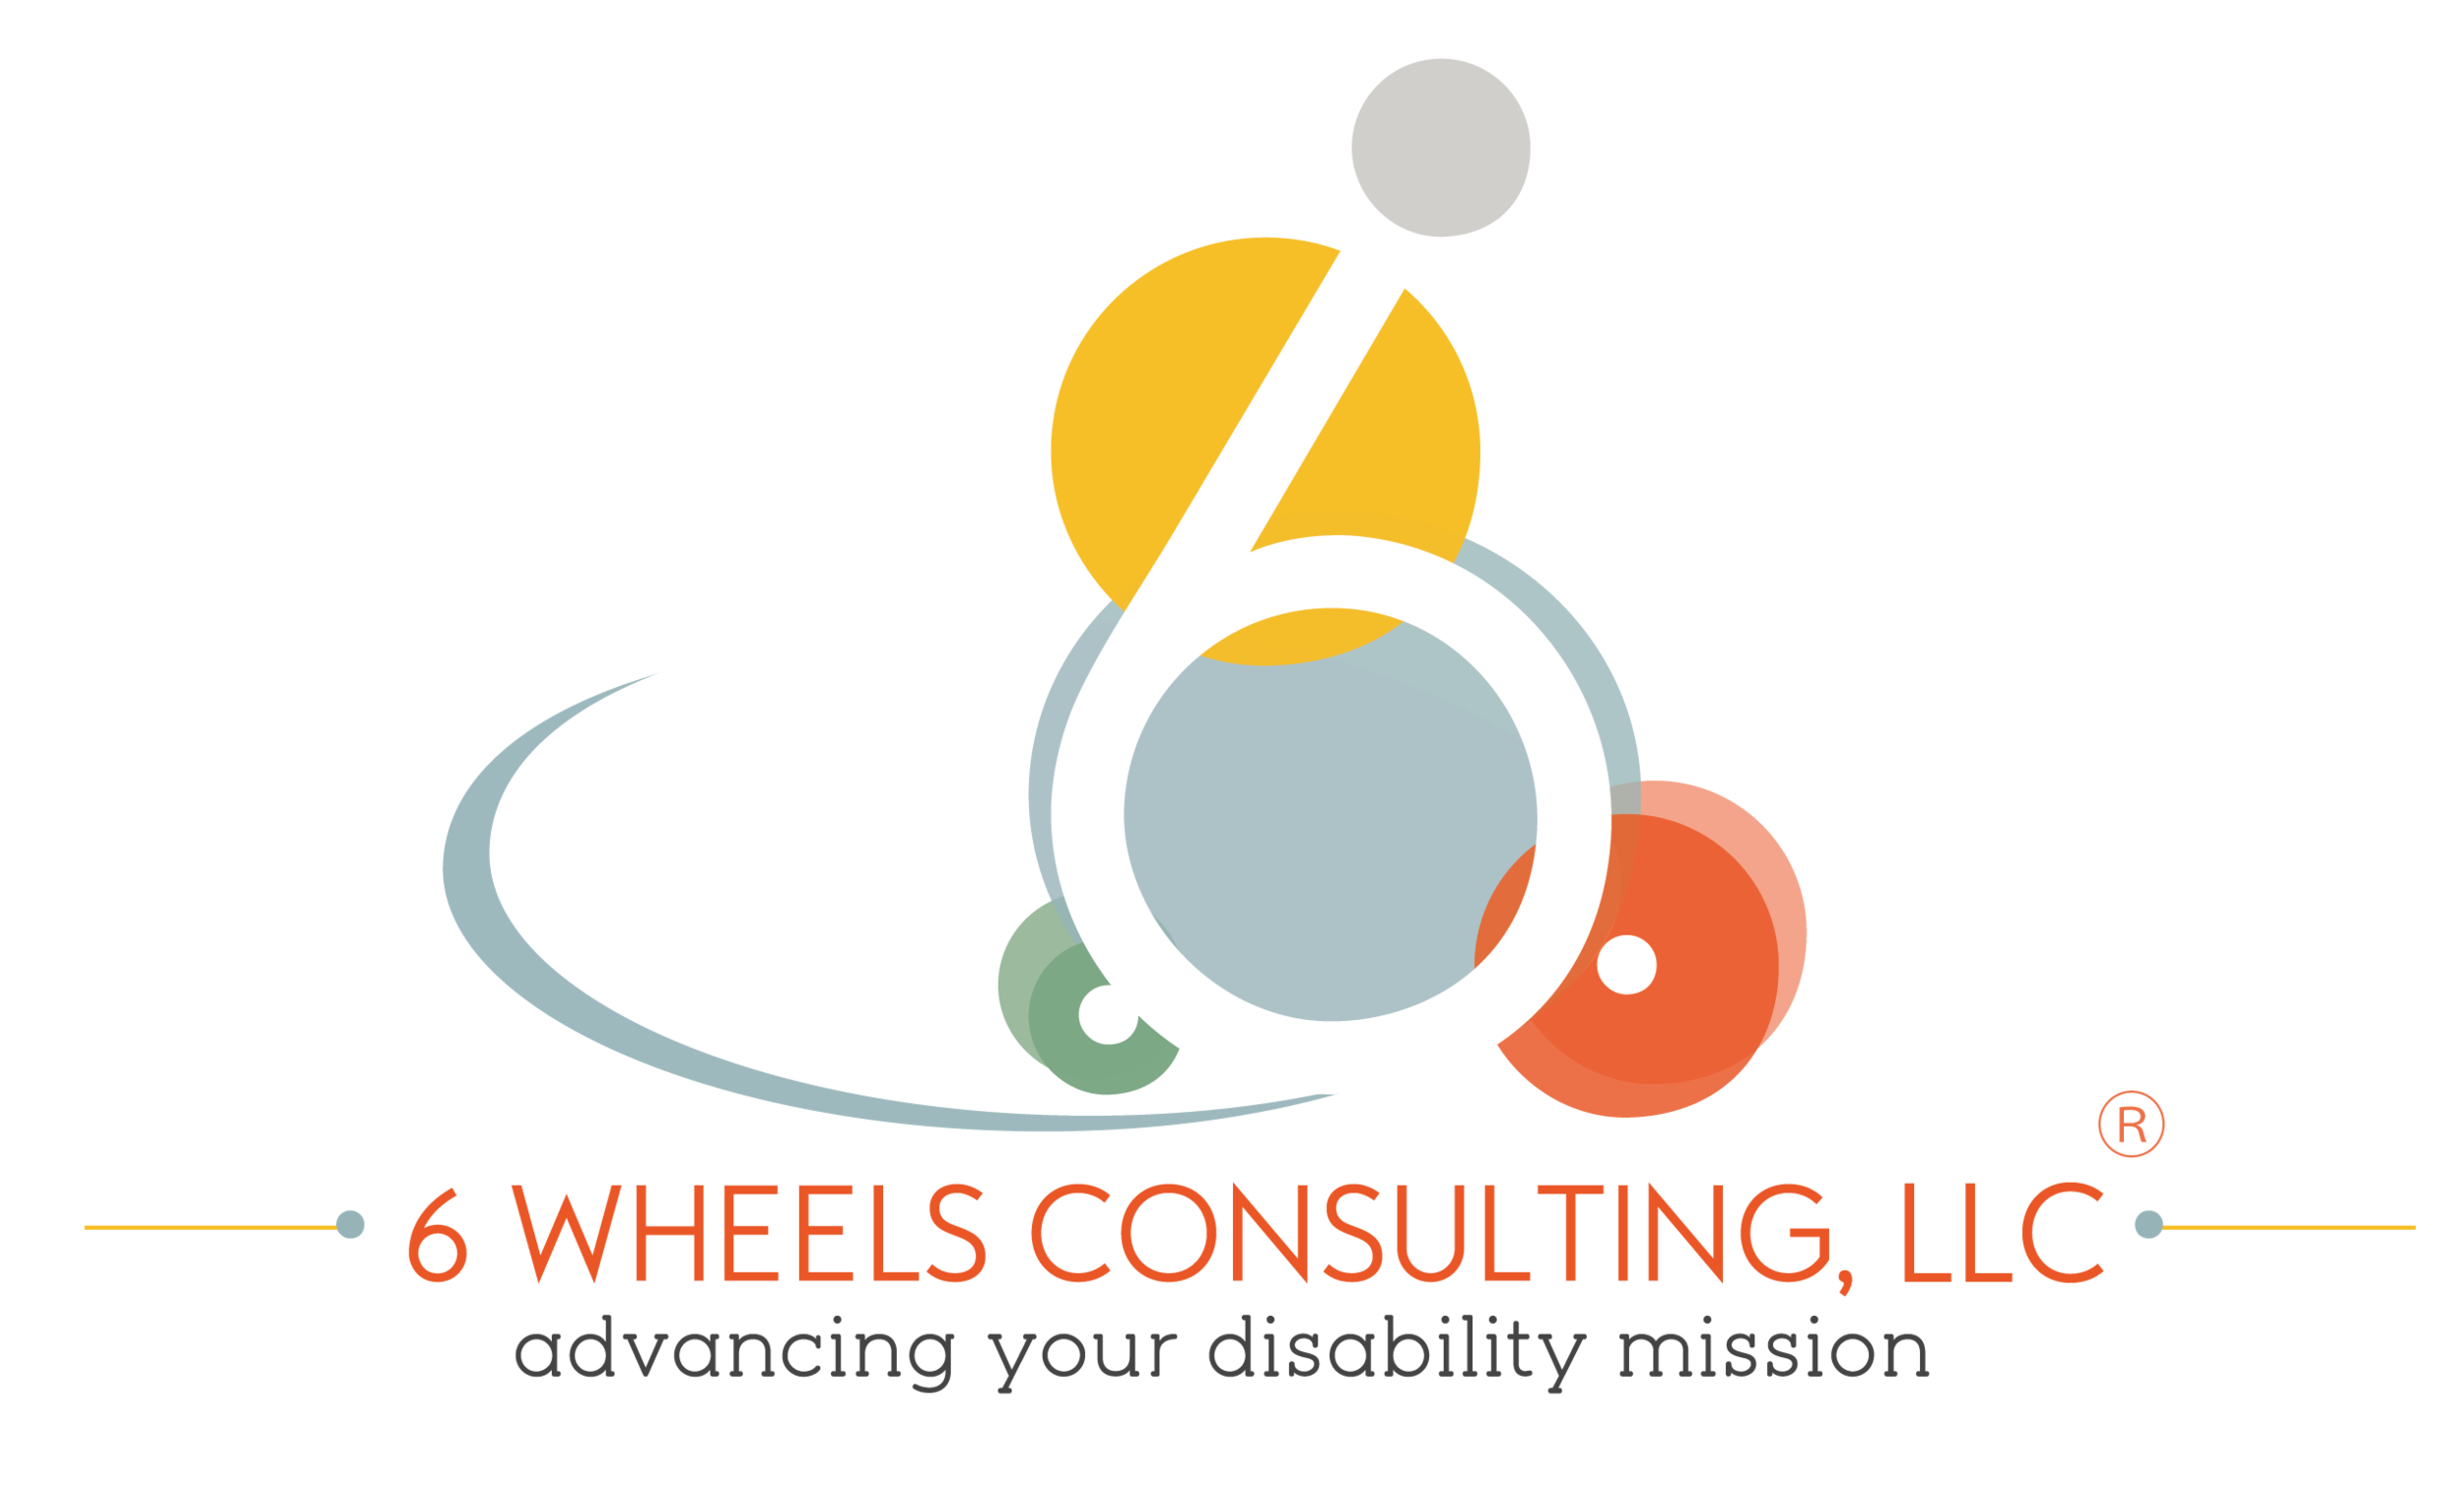 6 Wheels Consulting logo